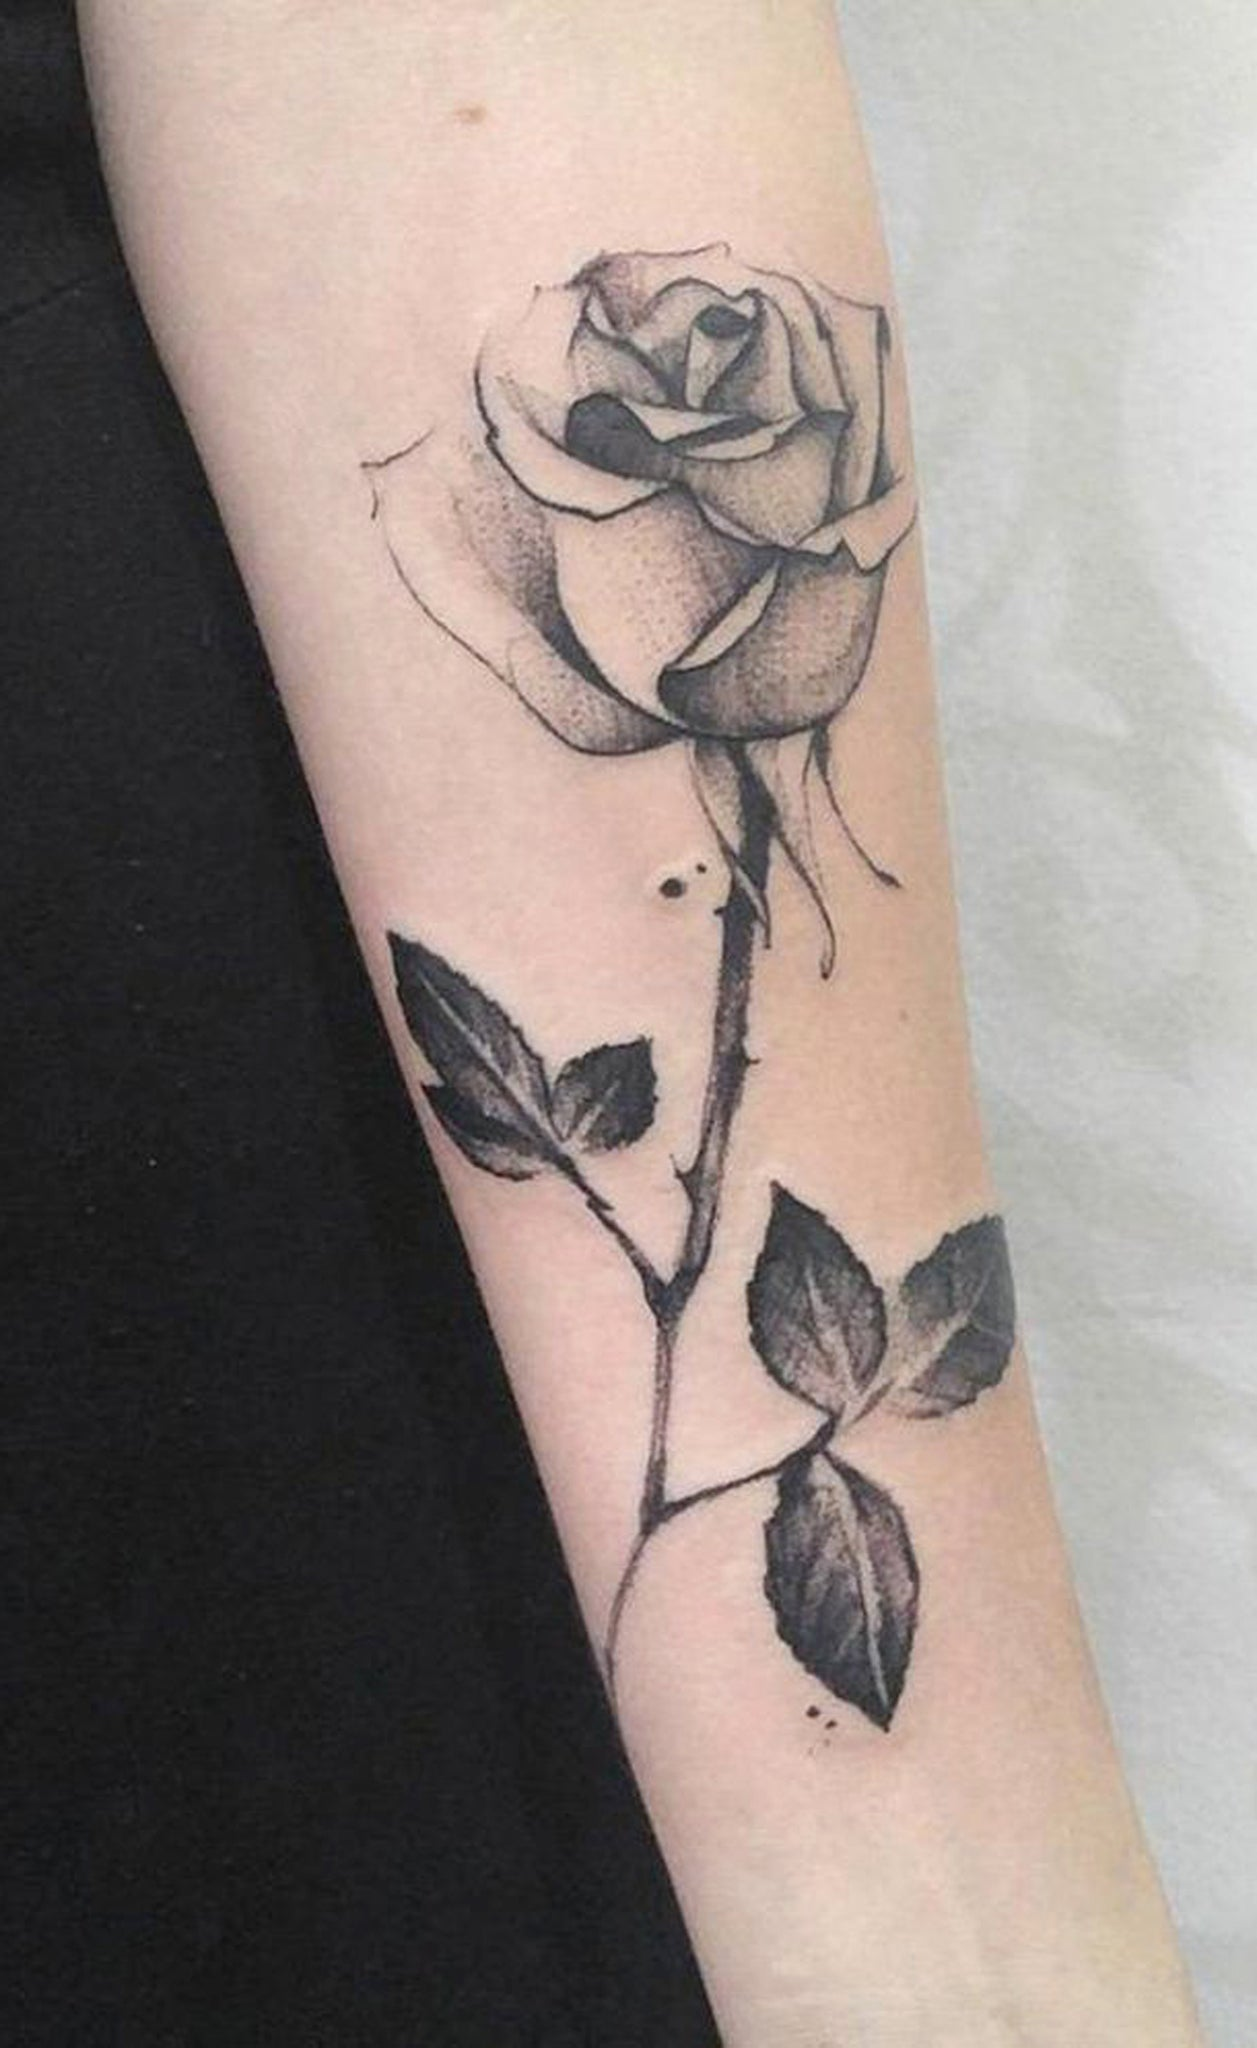 Realistic Single Rose Forearm Placement Tattoo Ideas - Simple Black Flower Arm Sleeve Tat -  ideas de tatuaje de brazo rosa para mujeres - www.MyBodiArt.com